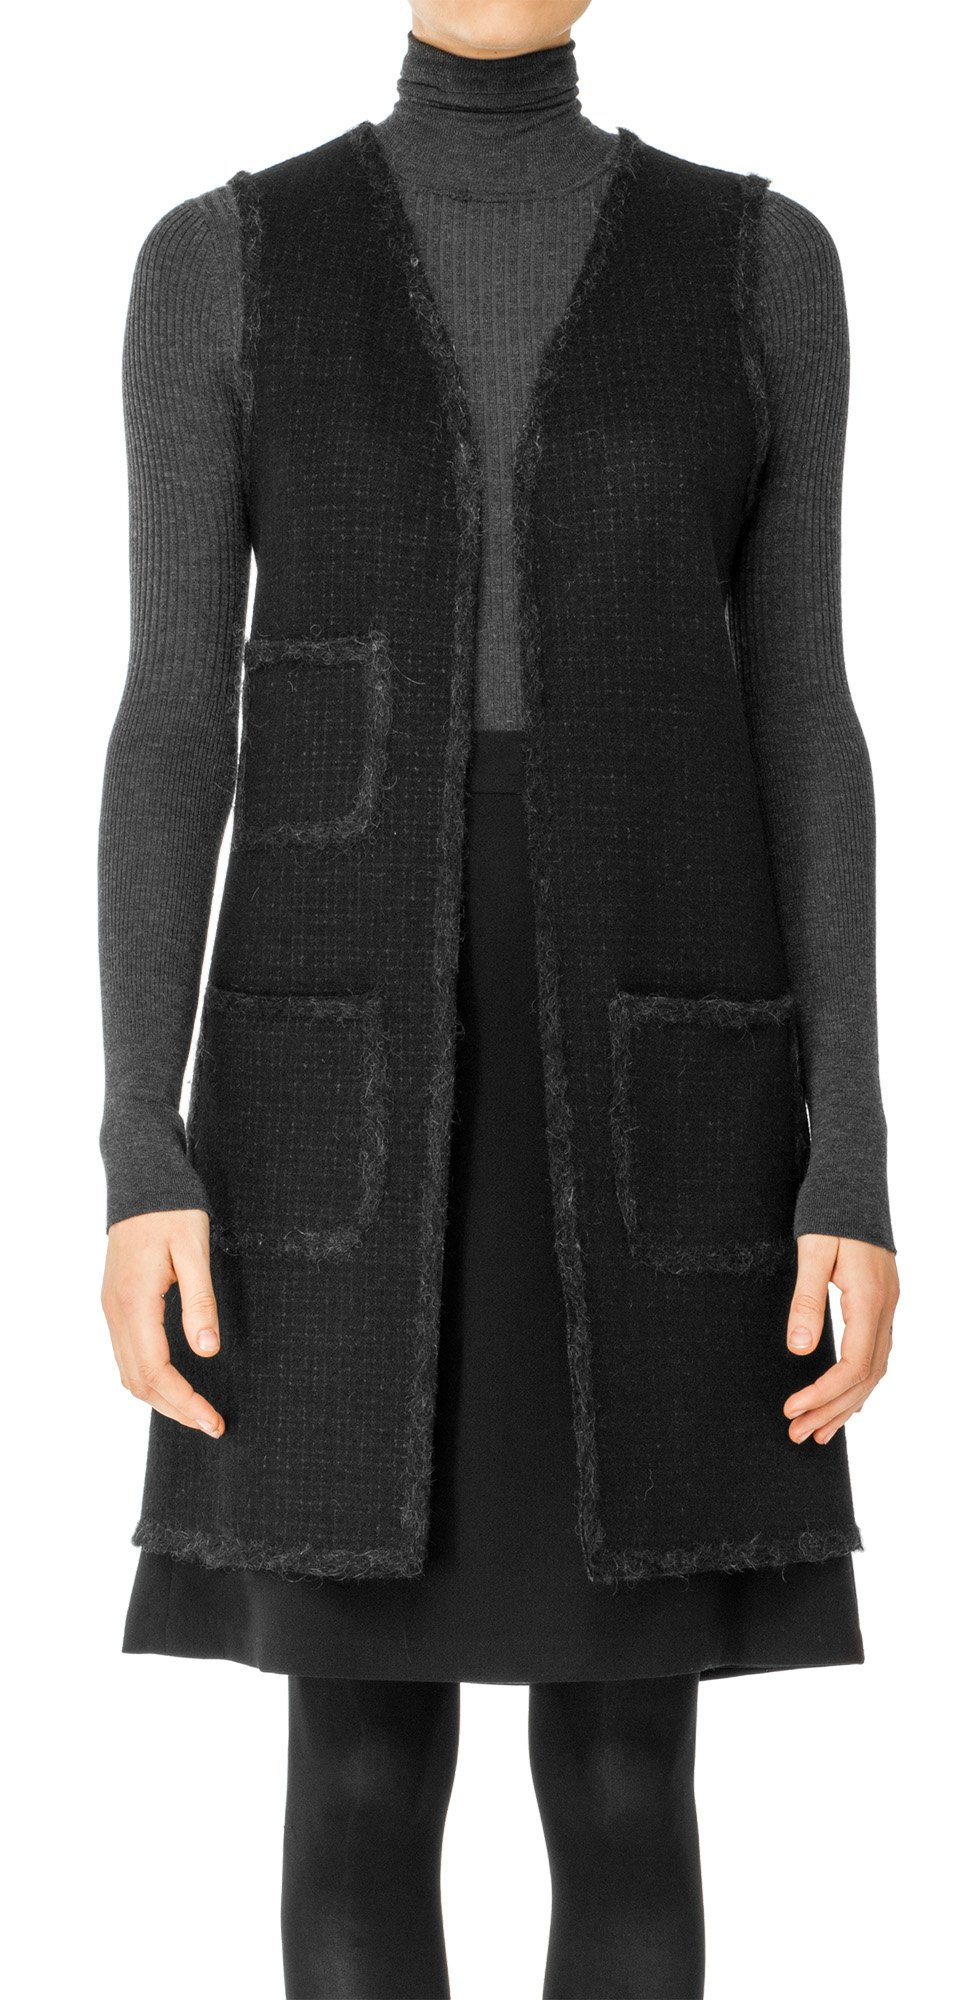 Max Studio by Leon Max Boiled Wool Shadow Checked Long Vest - 5106B45-CHARCOAL-S